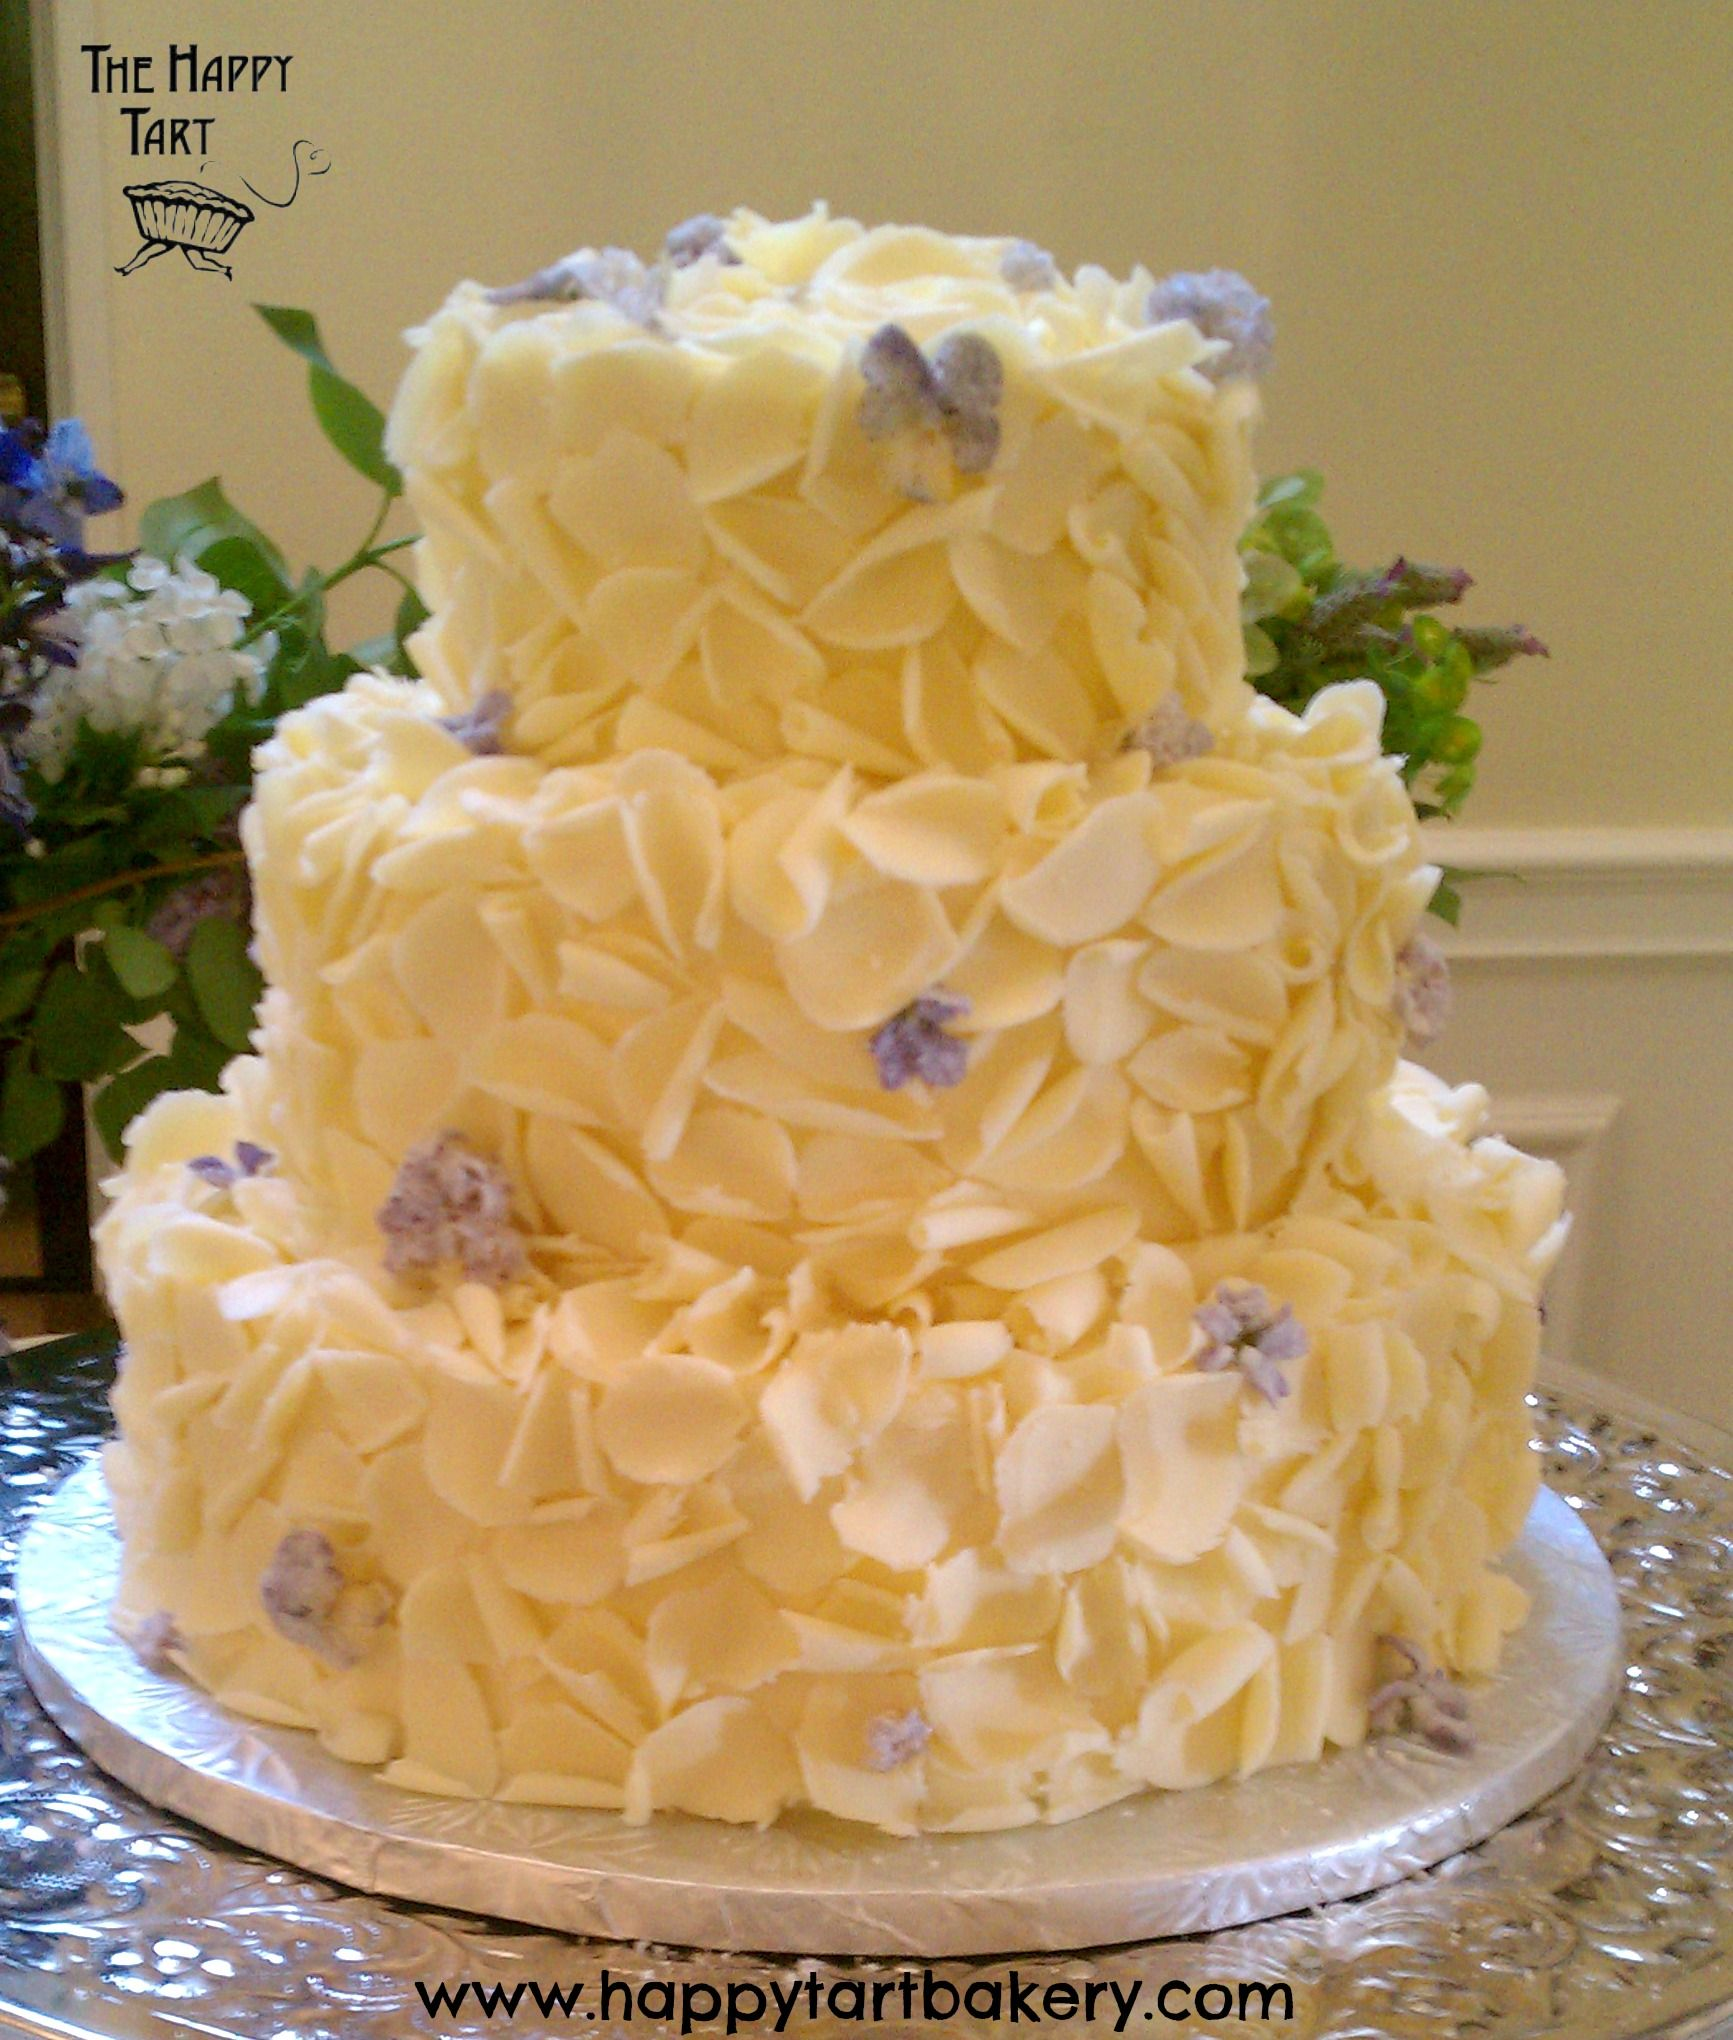 Gluten Free White Chocolate Curls and Candied Lilacs and Violets ...